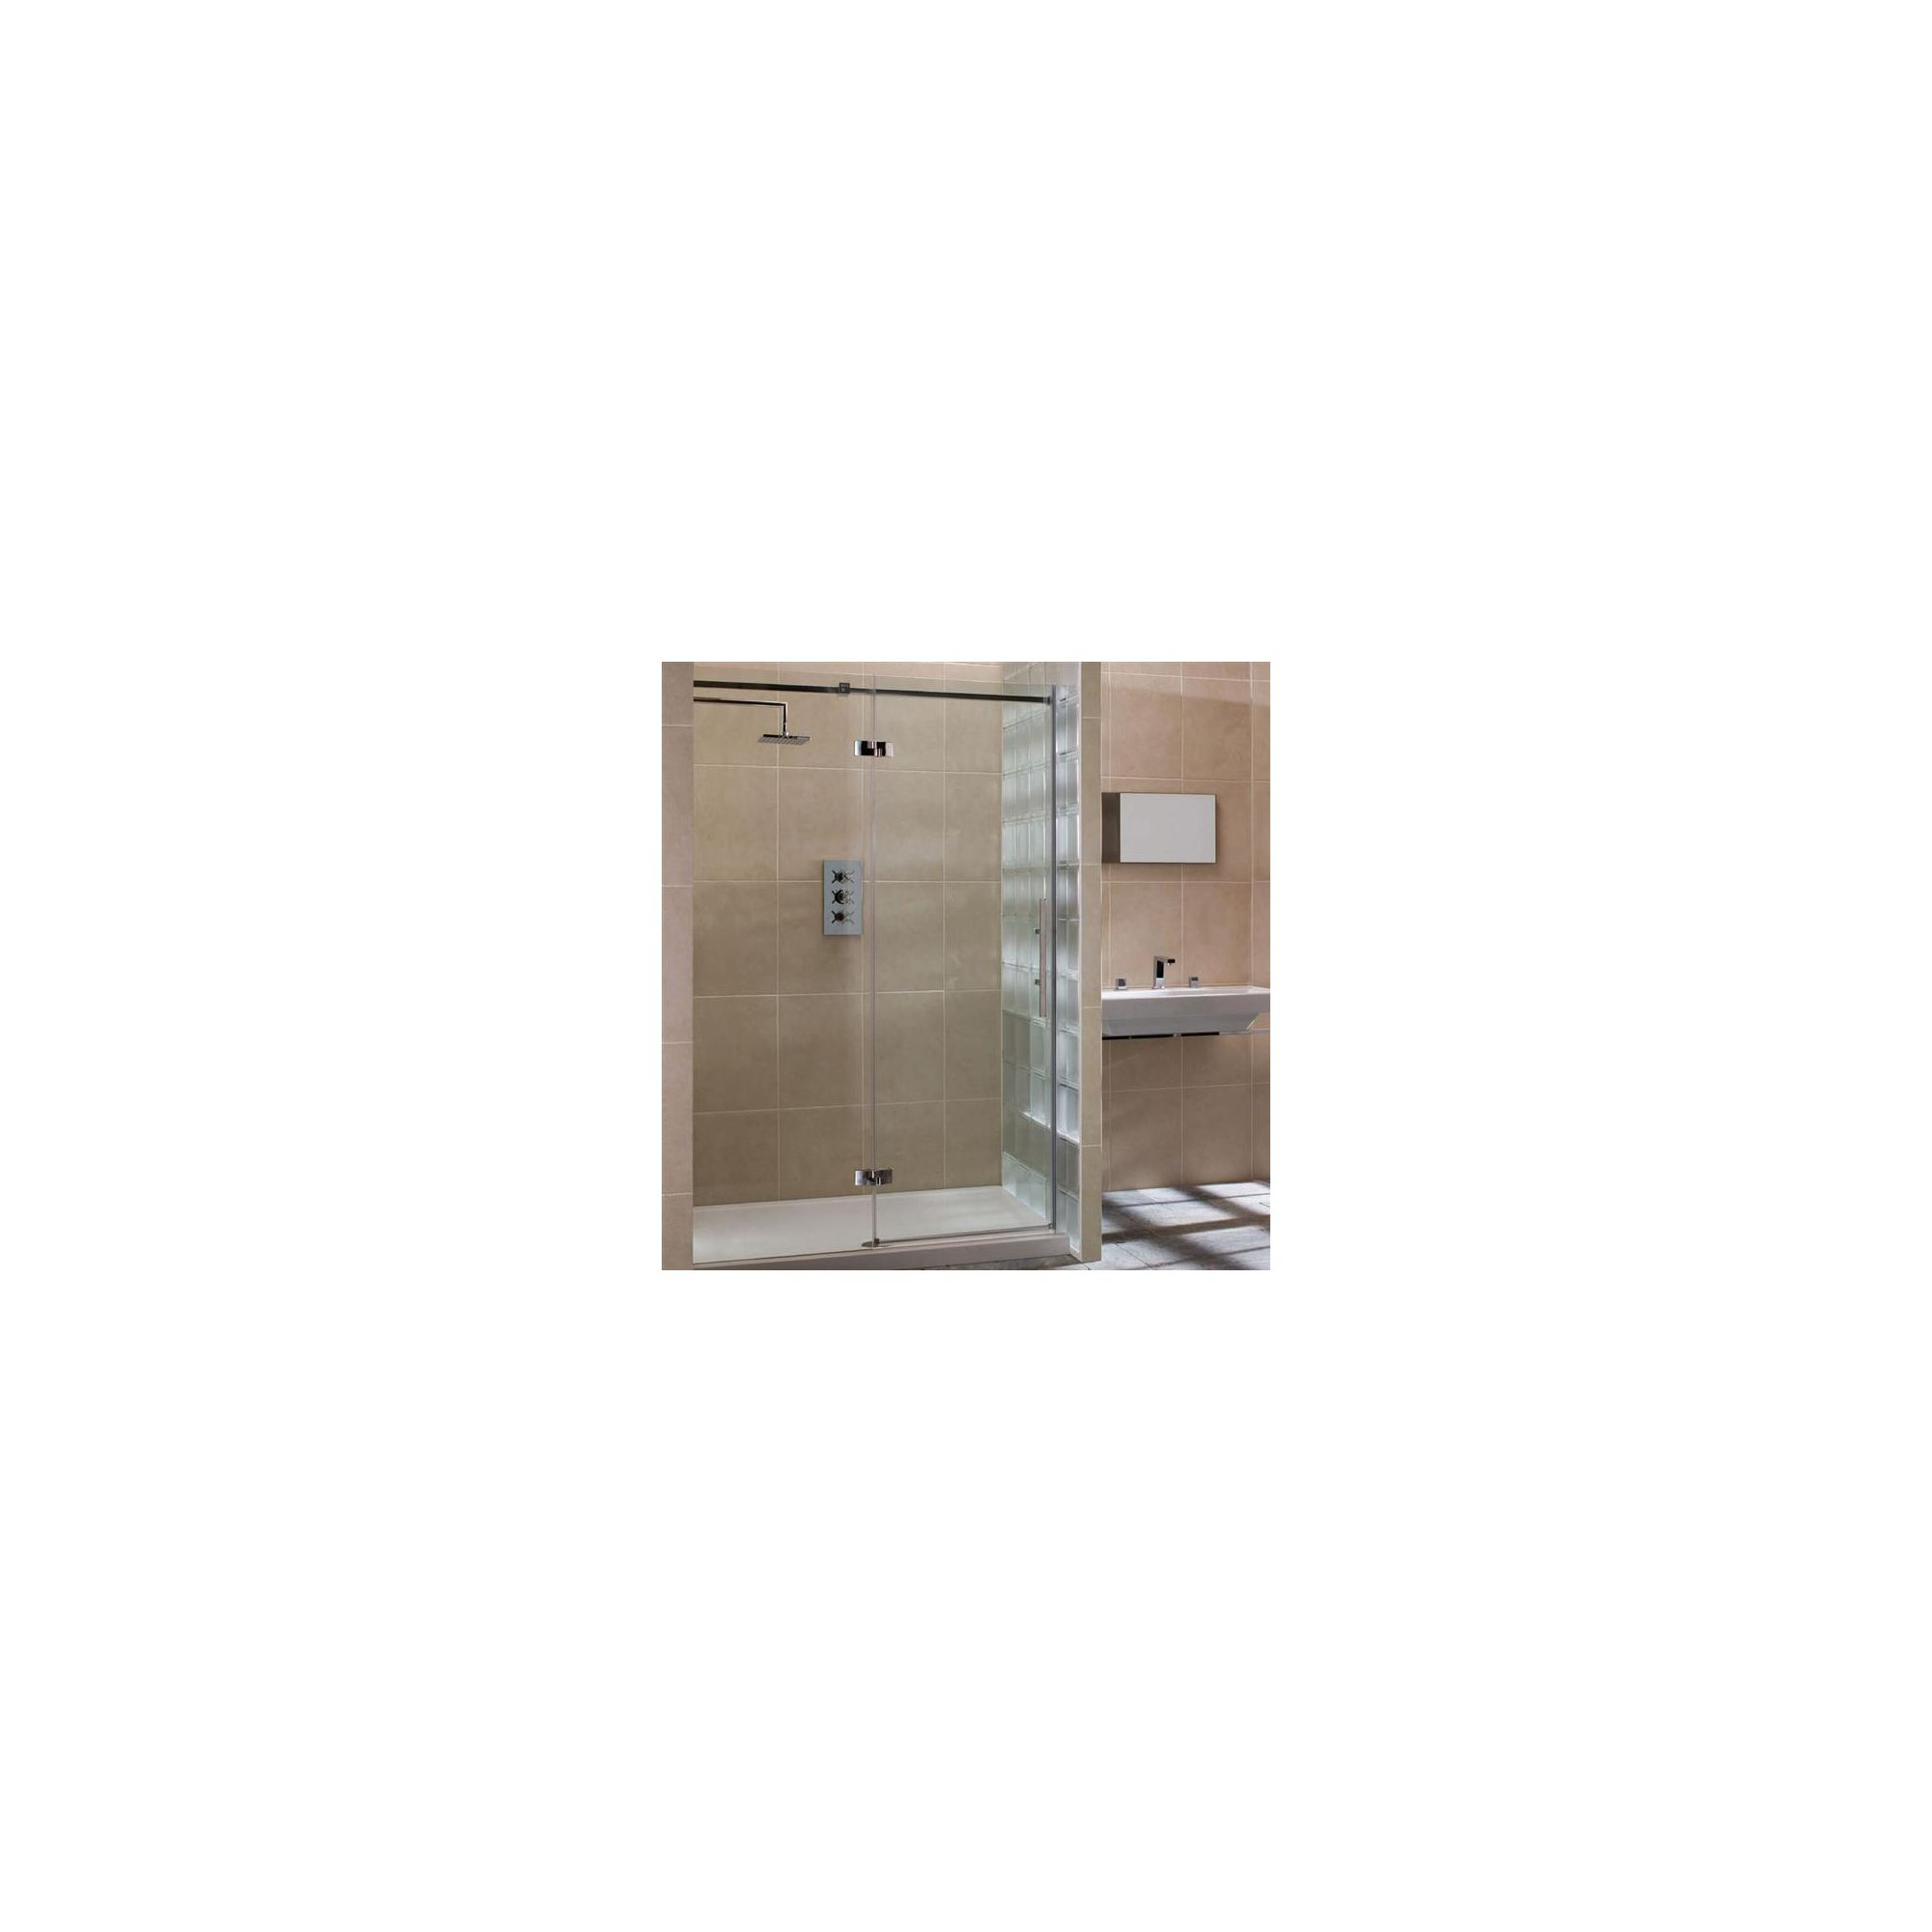 Merlyn Vivid Nine Hinged Door Alcove Shower Enclosure with Inline Panel, 1000mm x 800mm, Left Handed, Low Profile Tray, 8mm Glass at Tesco Direct